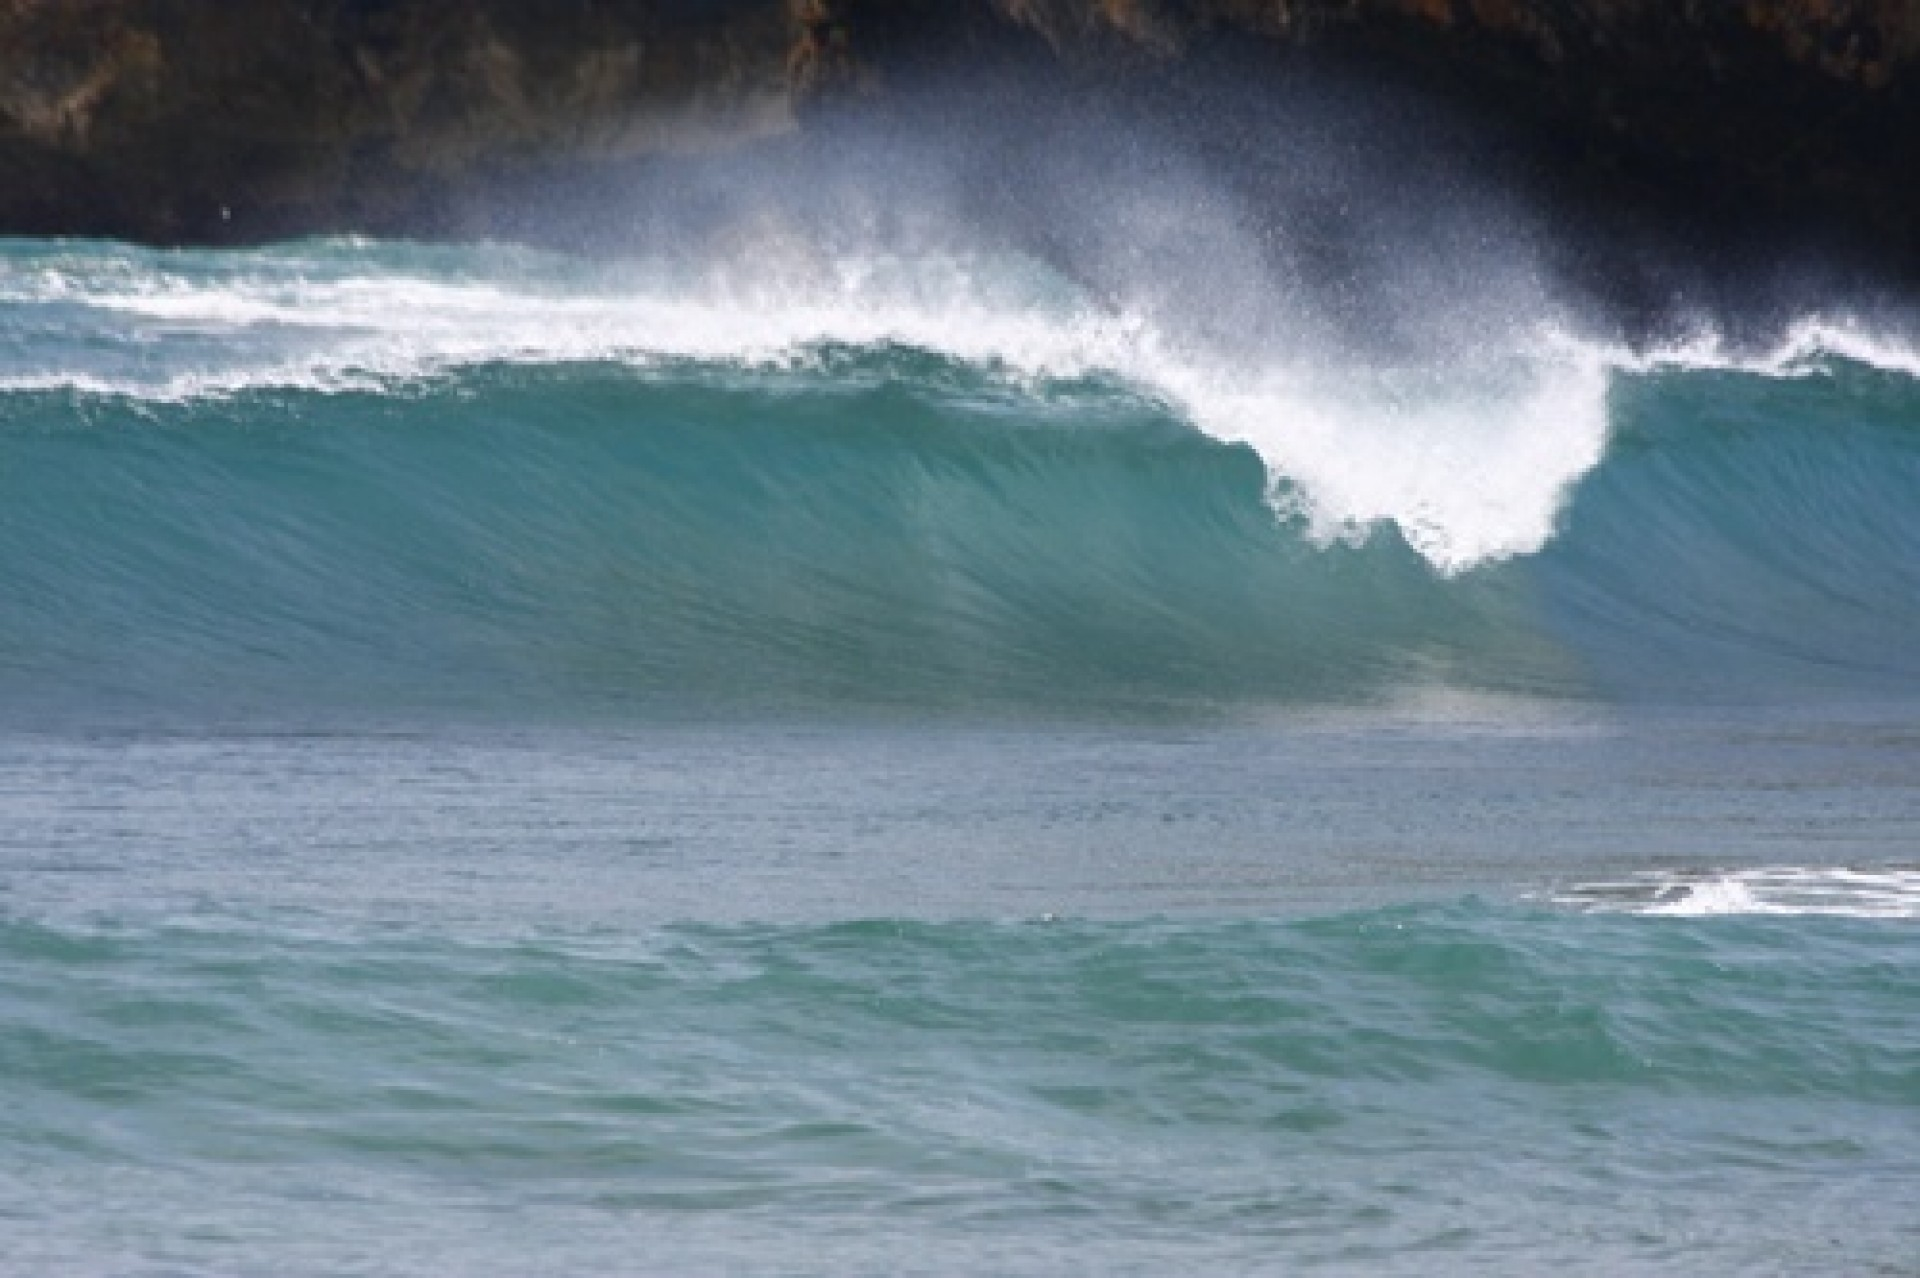 istiqardo jihadda's photo of Pacitan